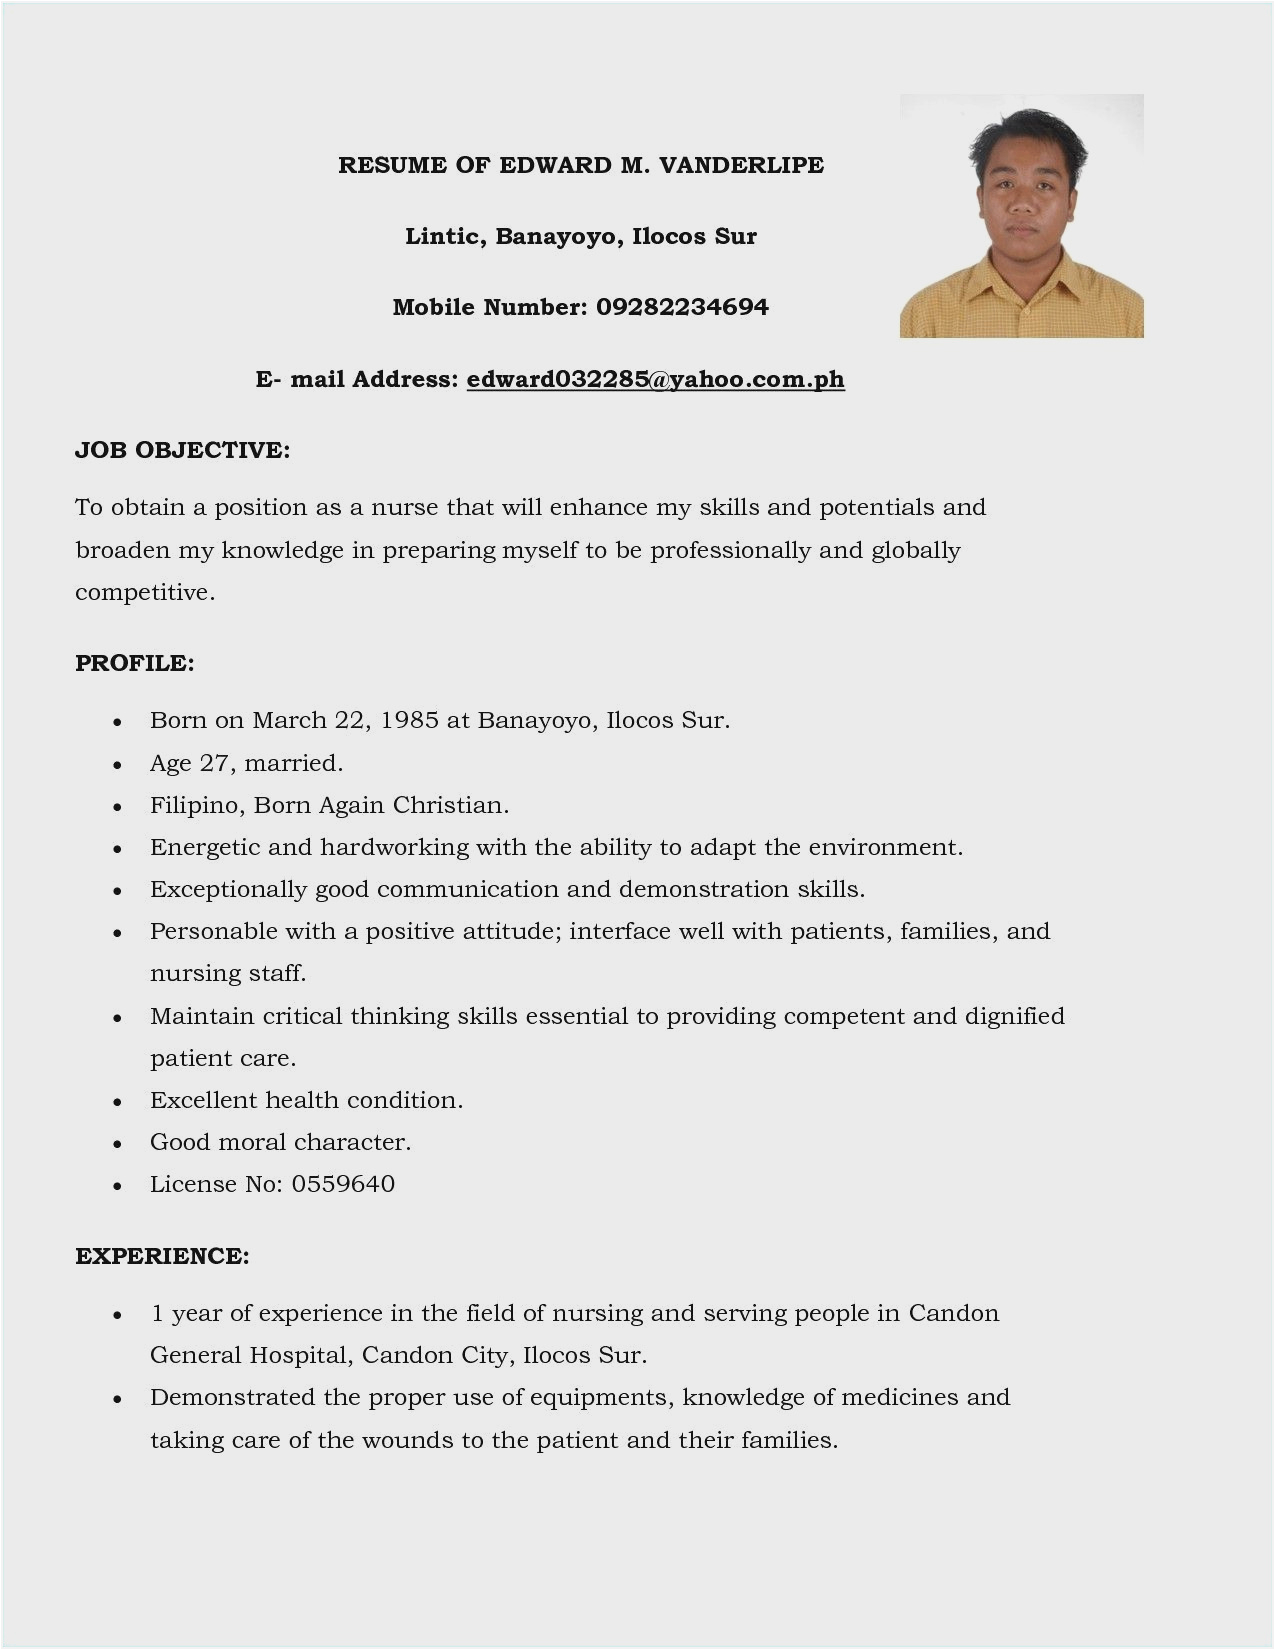 resume with picture philippines